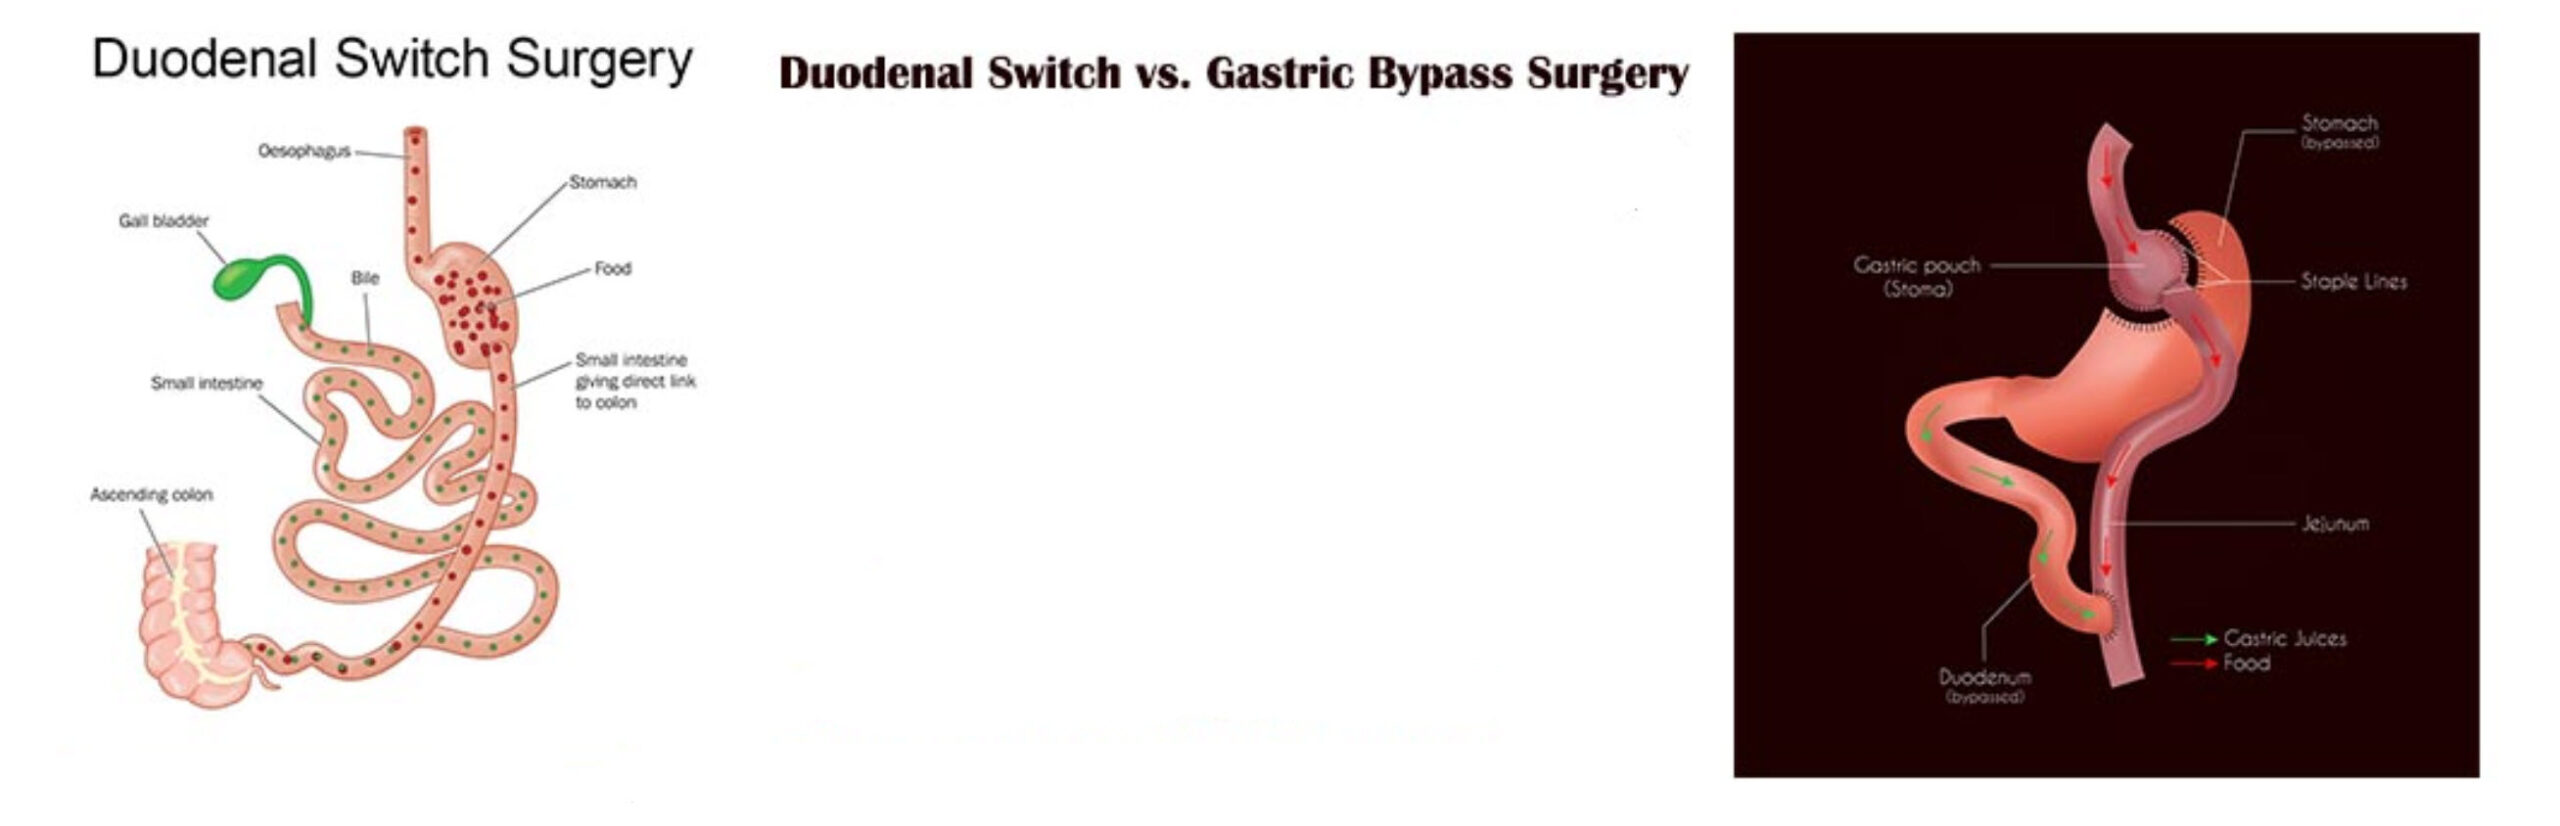 duodenal switch vs gastric bypass